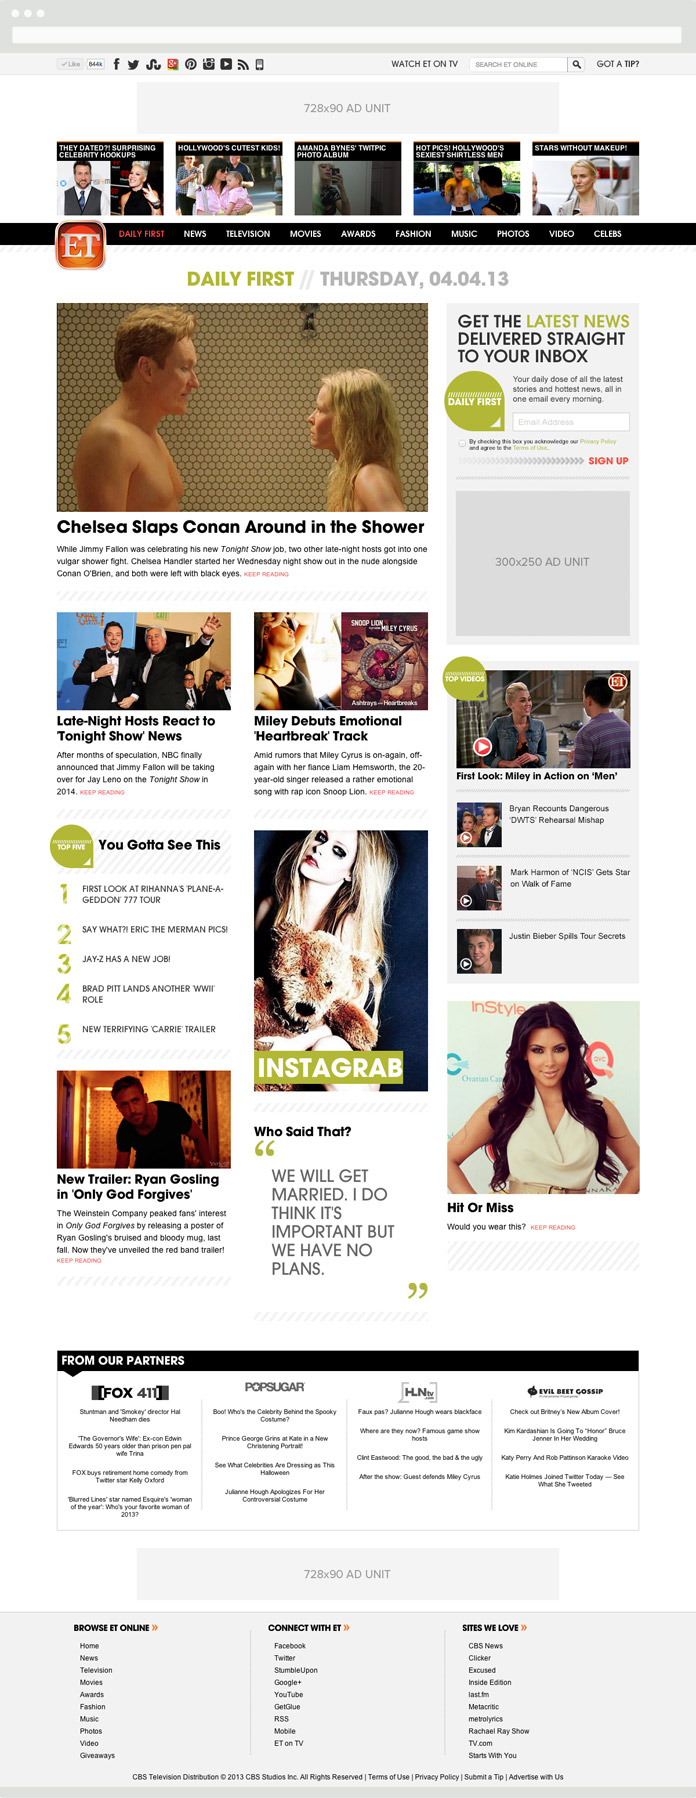 Image of the Daily First on Desktop